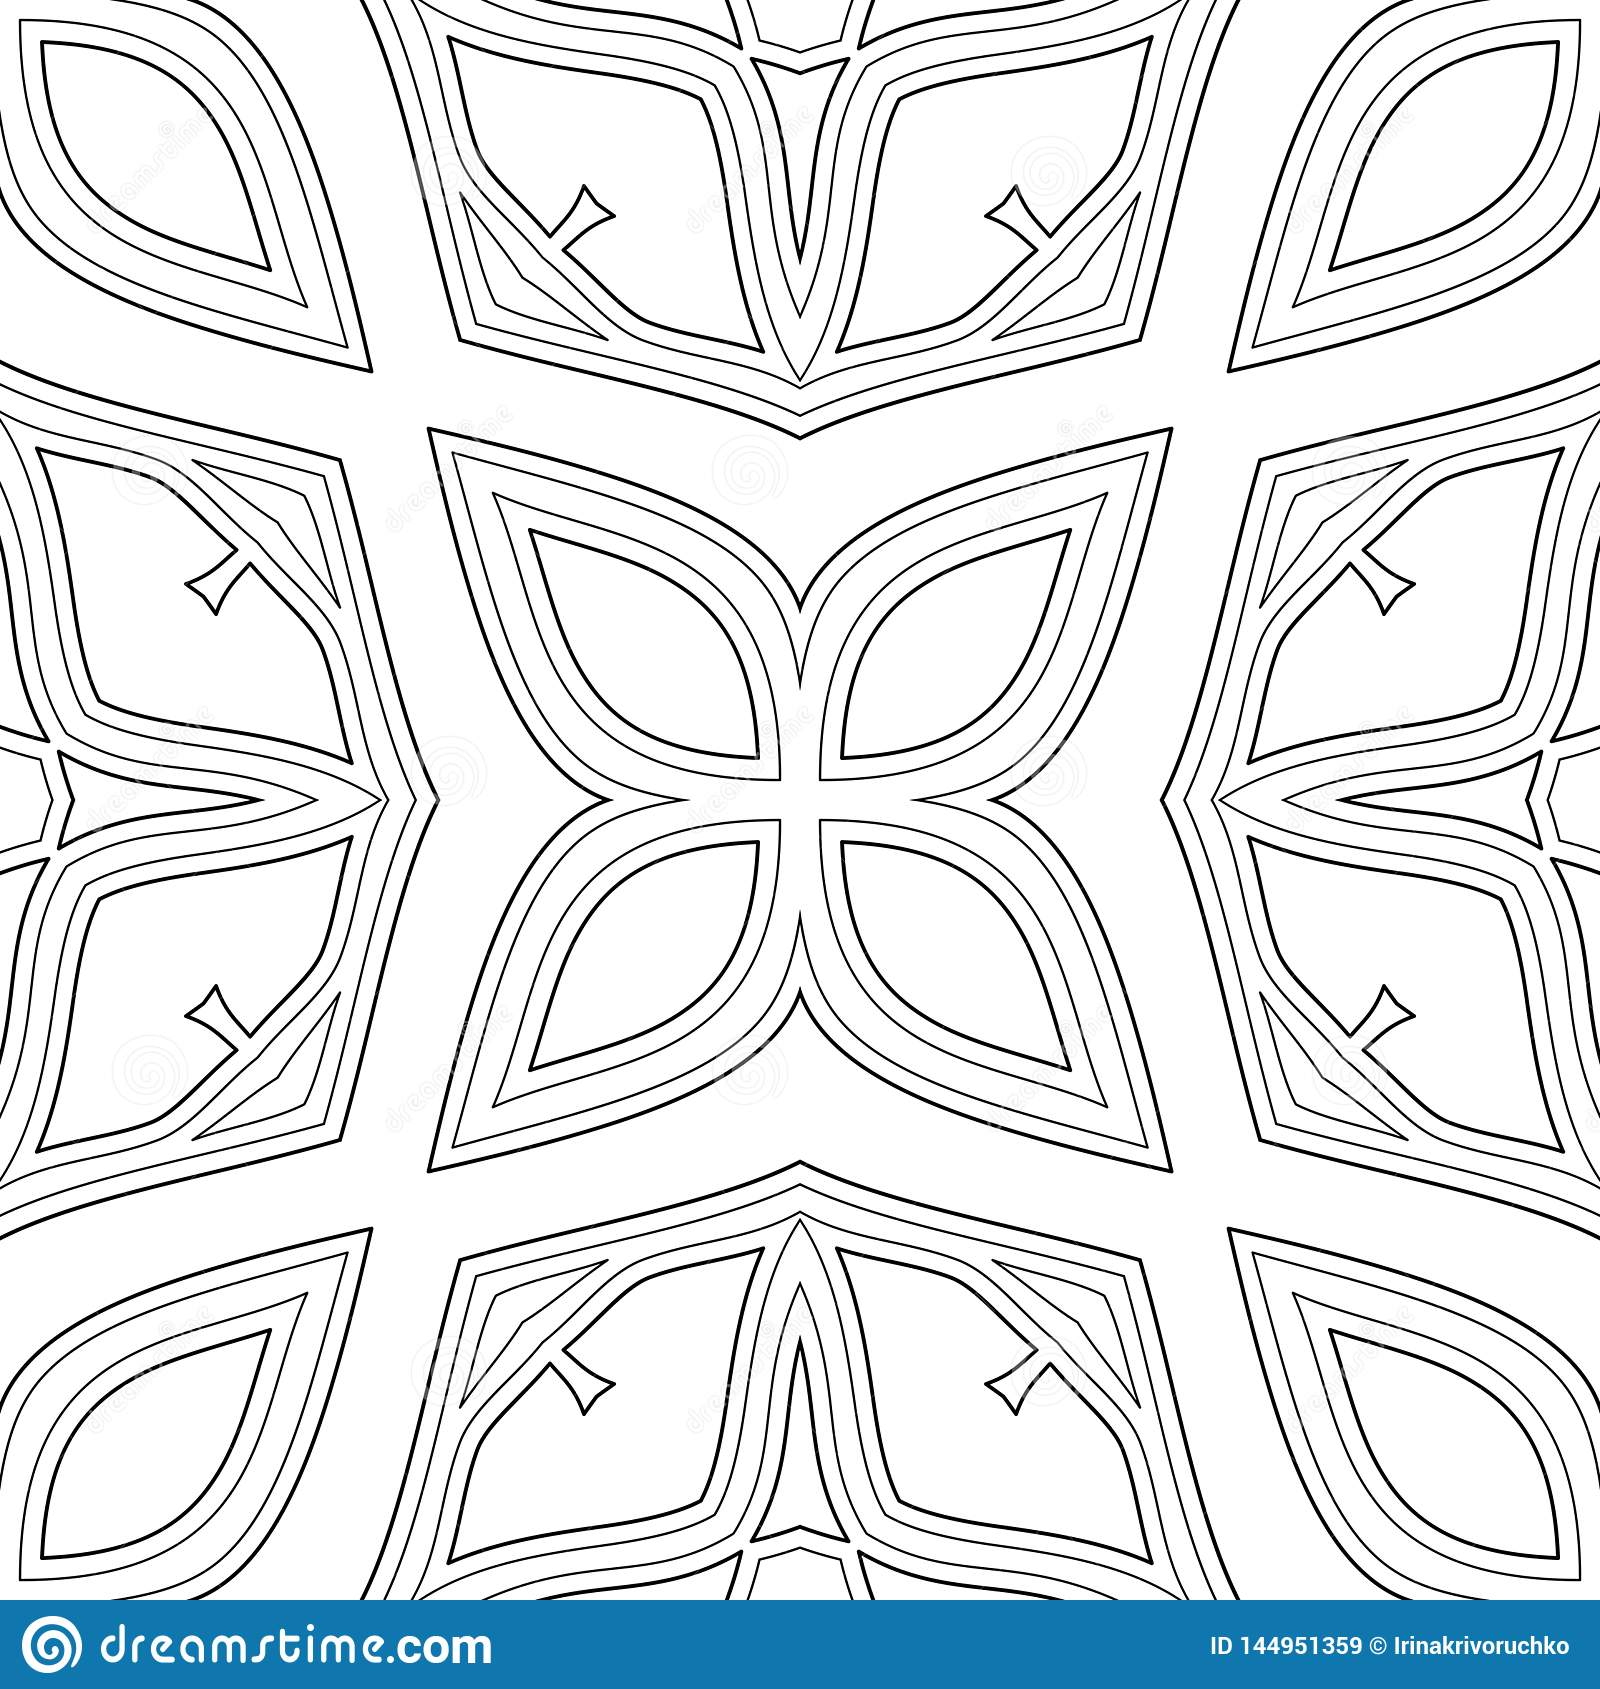 Pattern Simple Mosaic Coloring Pages #7145 Simple Mosaic Coloring ... | 1689x1600